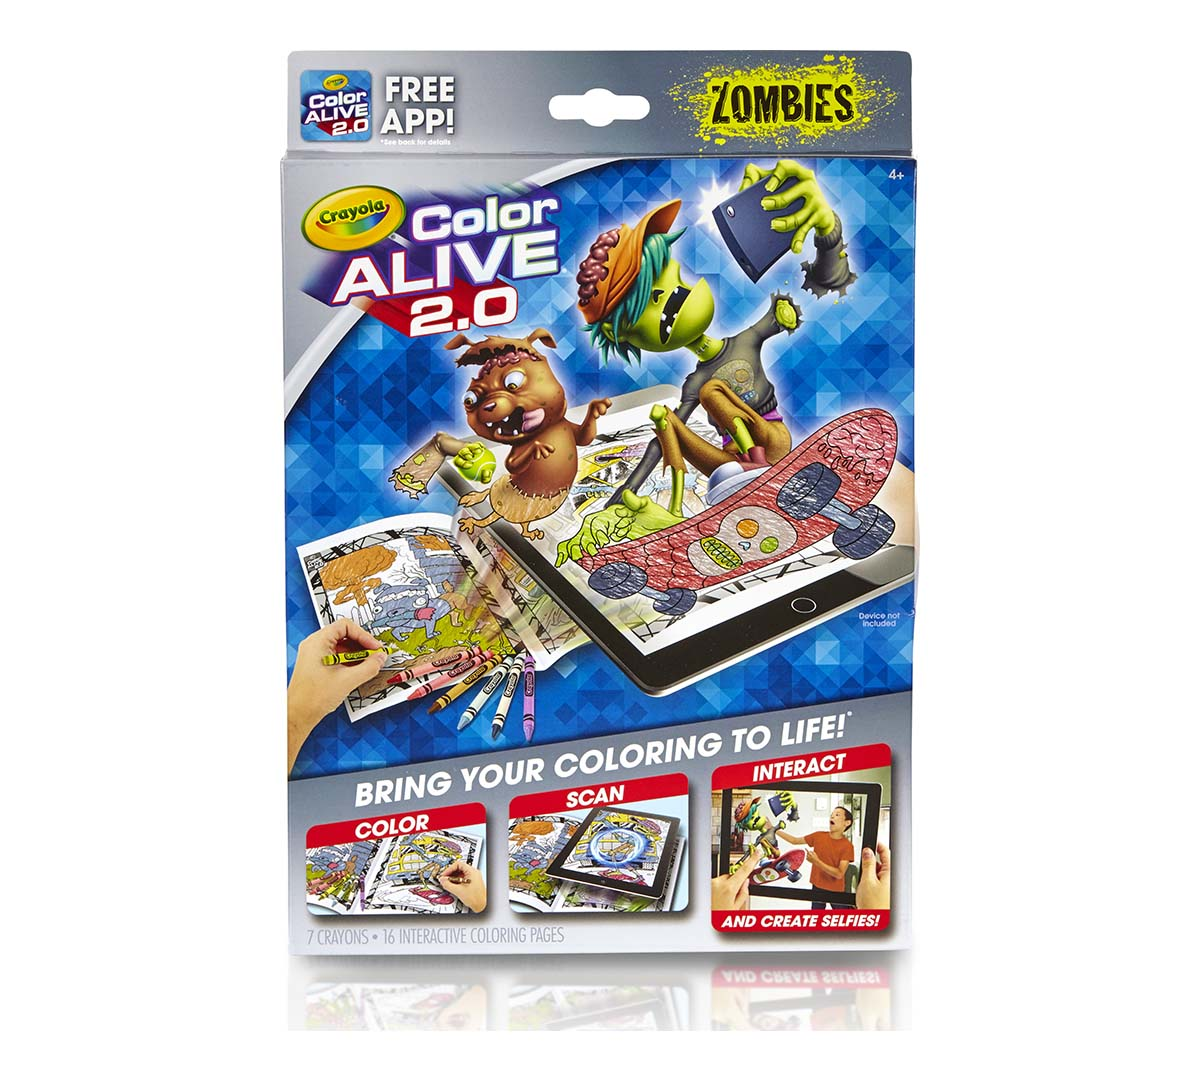 Color Alive 2.0, Zombies